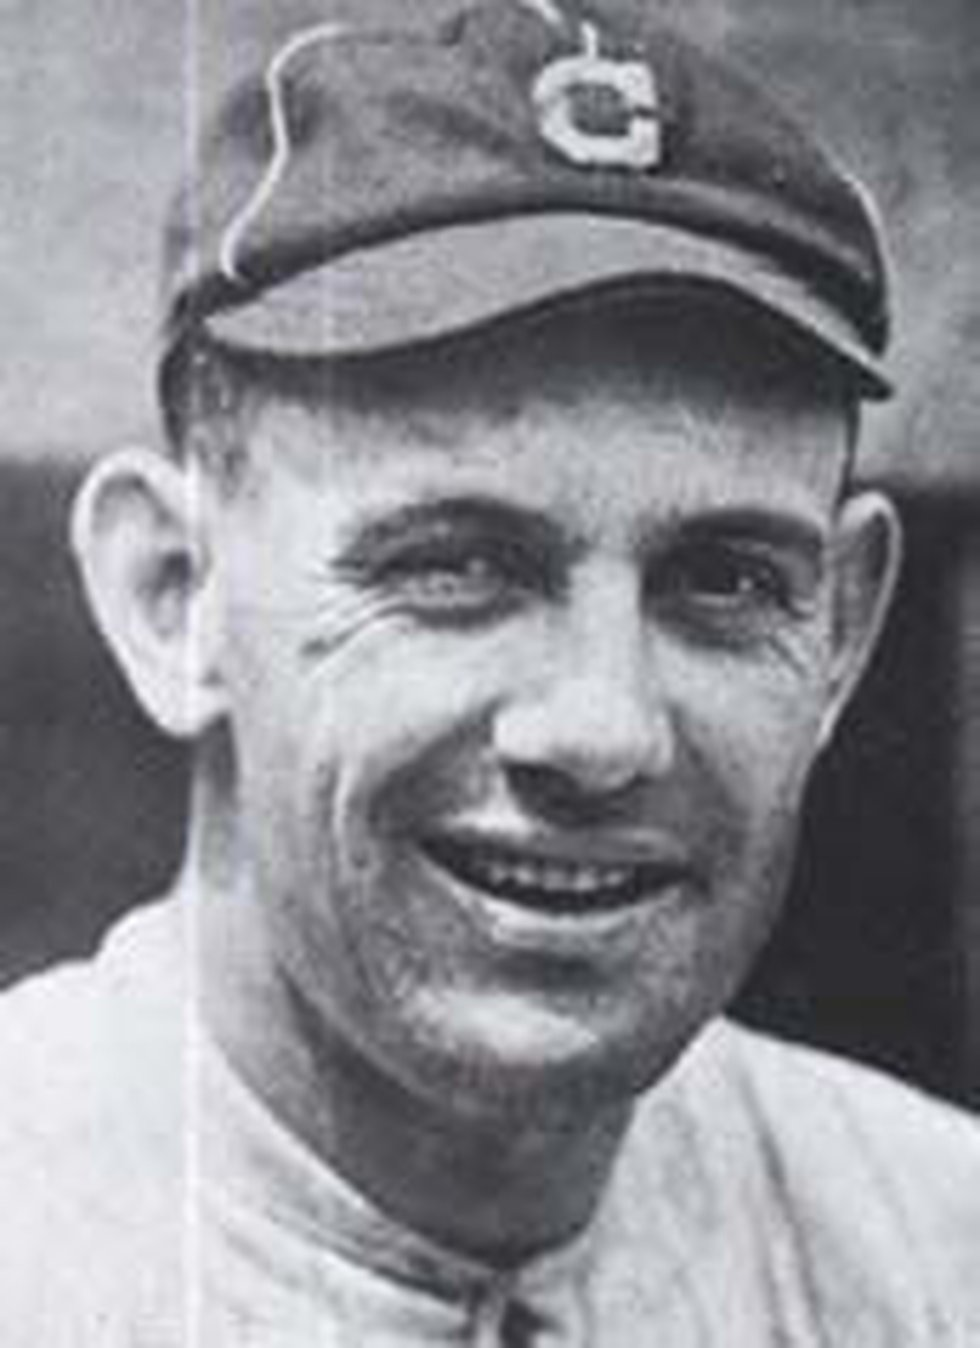 Ray Chapman, pictured here, was killed after being hit in the head by a pitch on Aug. 16, 1920....